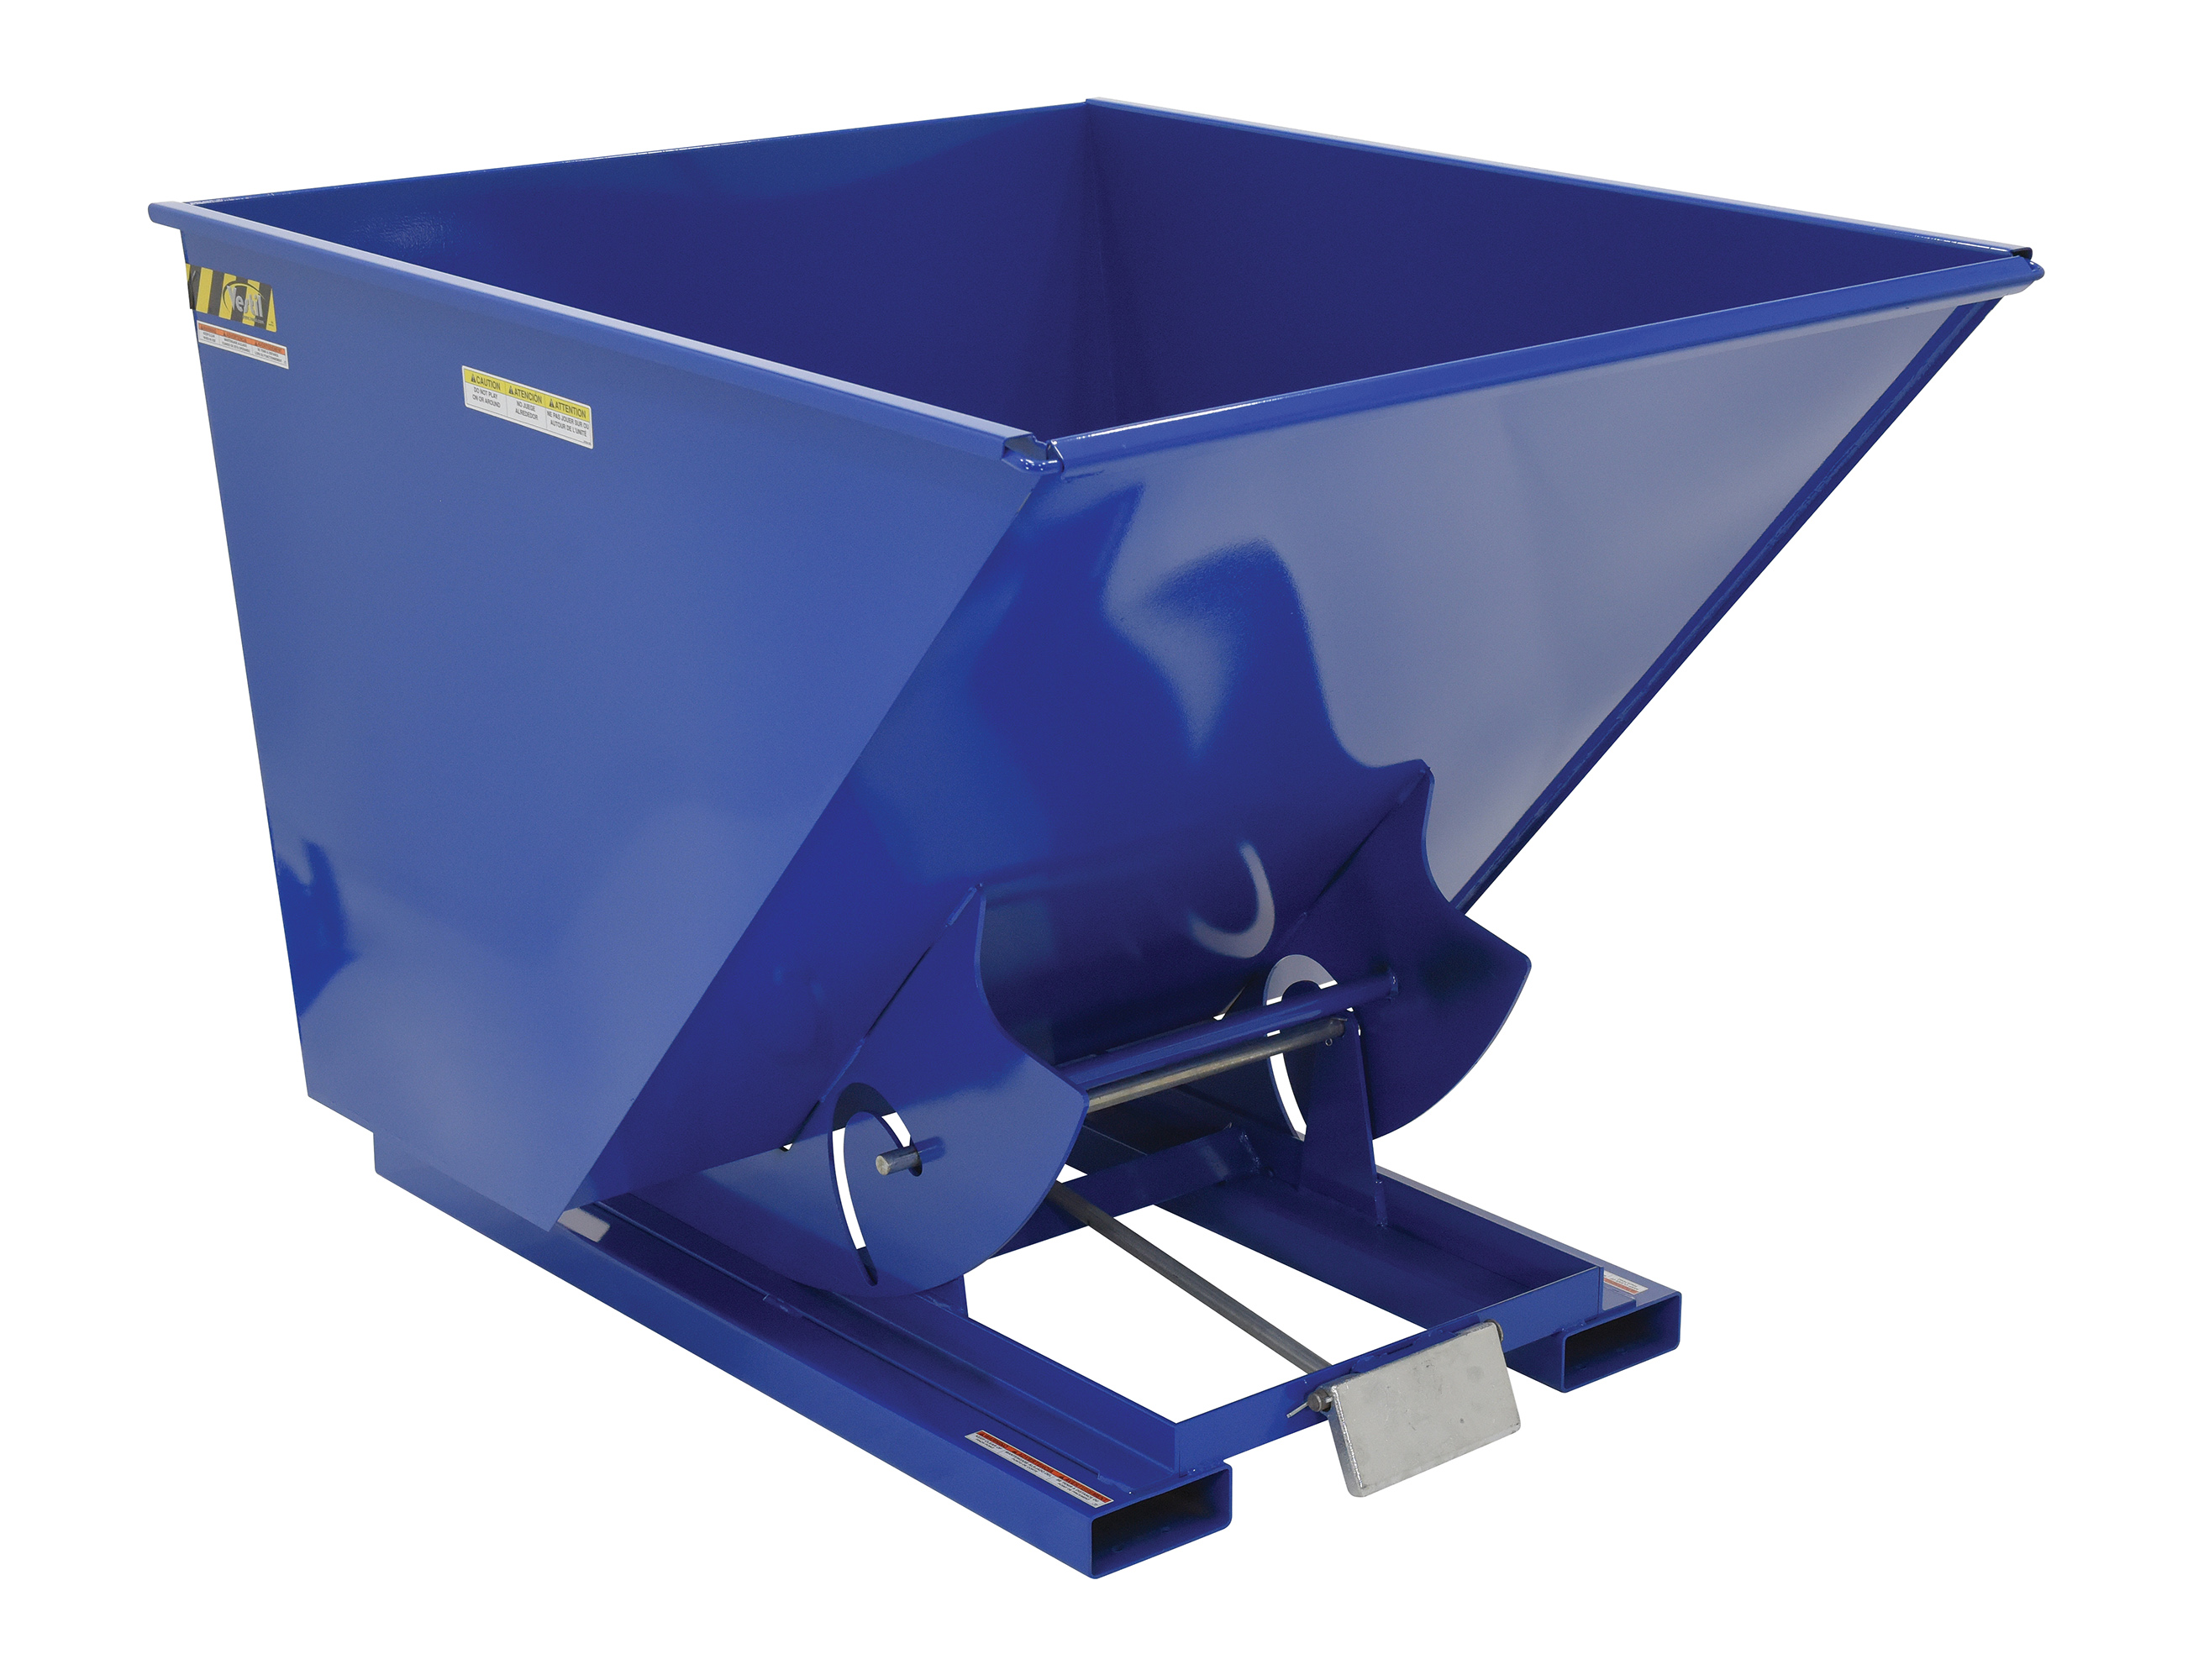 Vestil 2 Yard Self-Dumping Steel Hopper With Bumper Release, Model D-200-HD